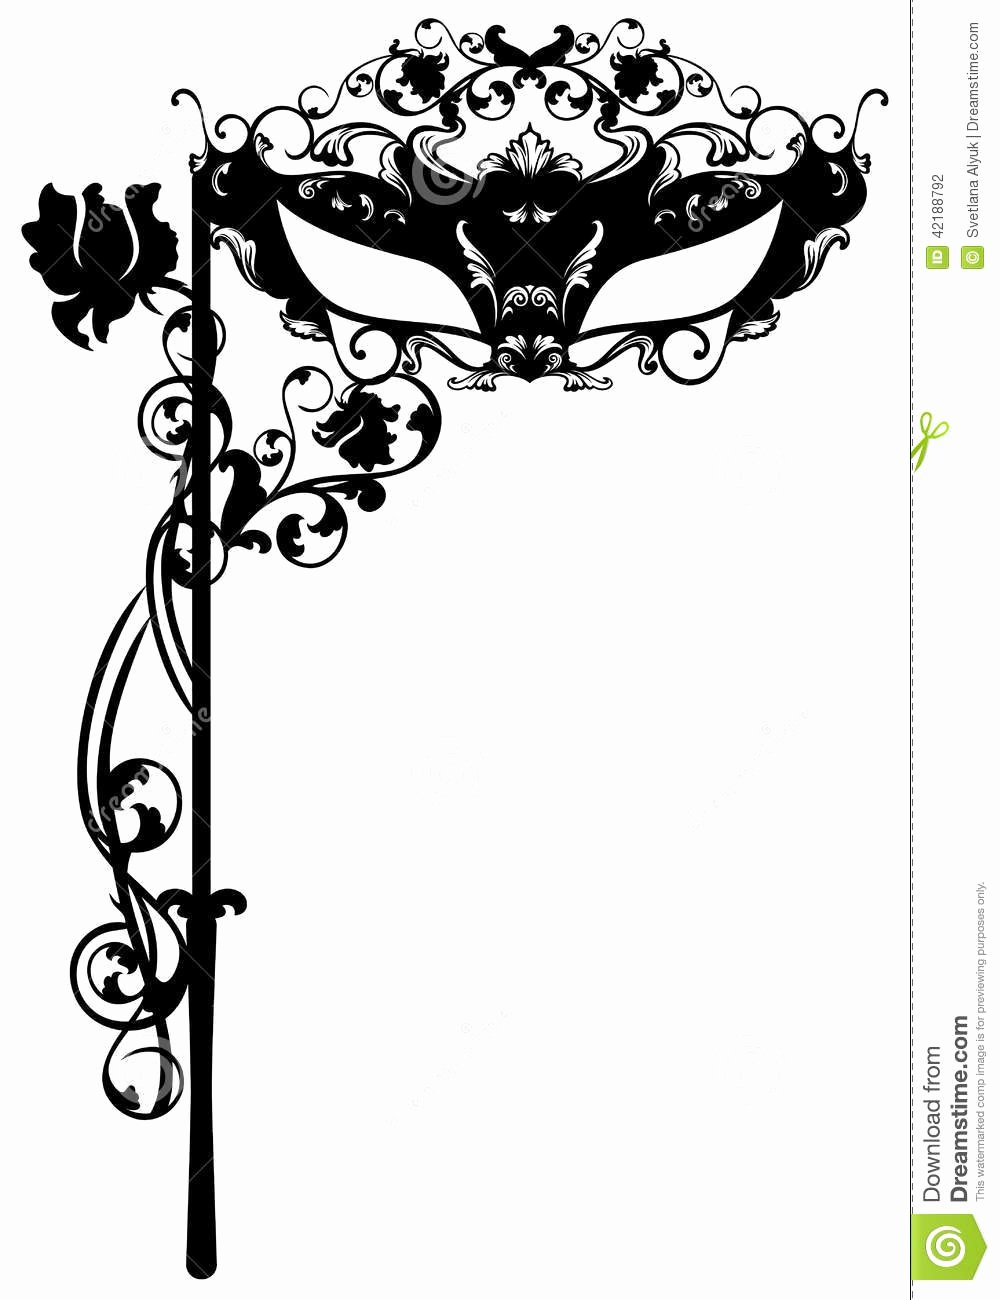 Masquerade Mask Invitation Template Best Of Face Mask Stock Vector Illustration Of Illustration